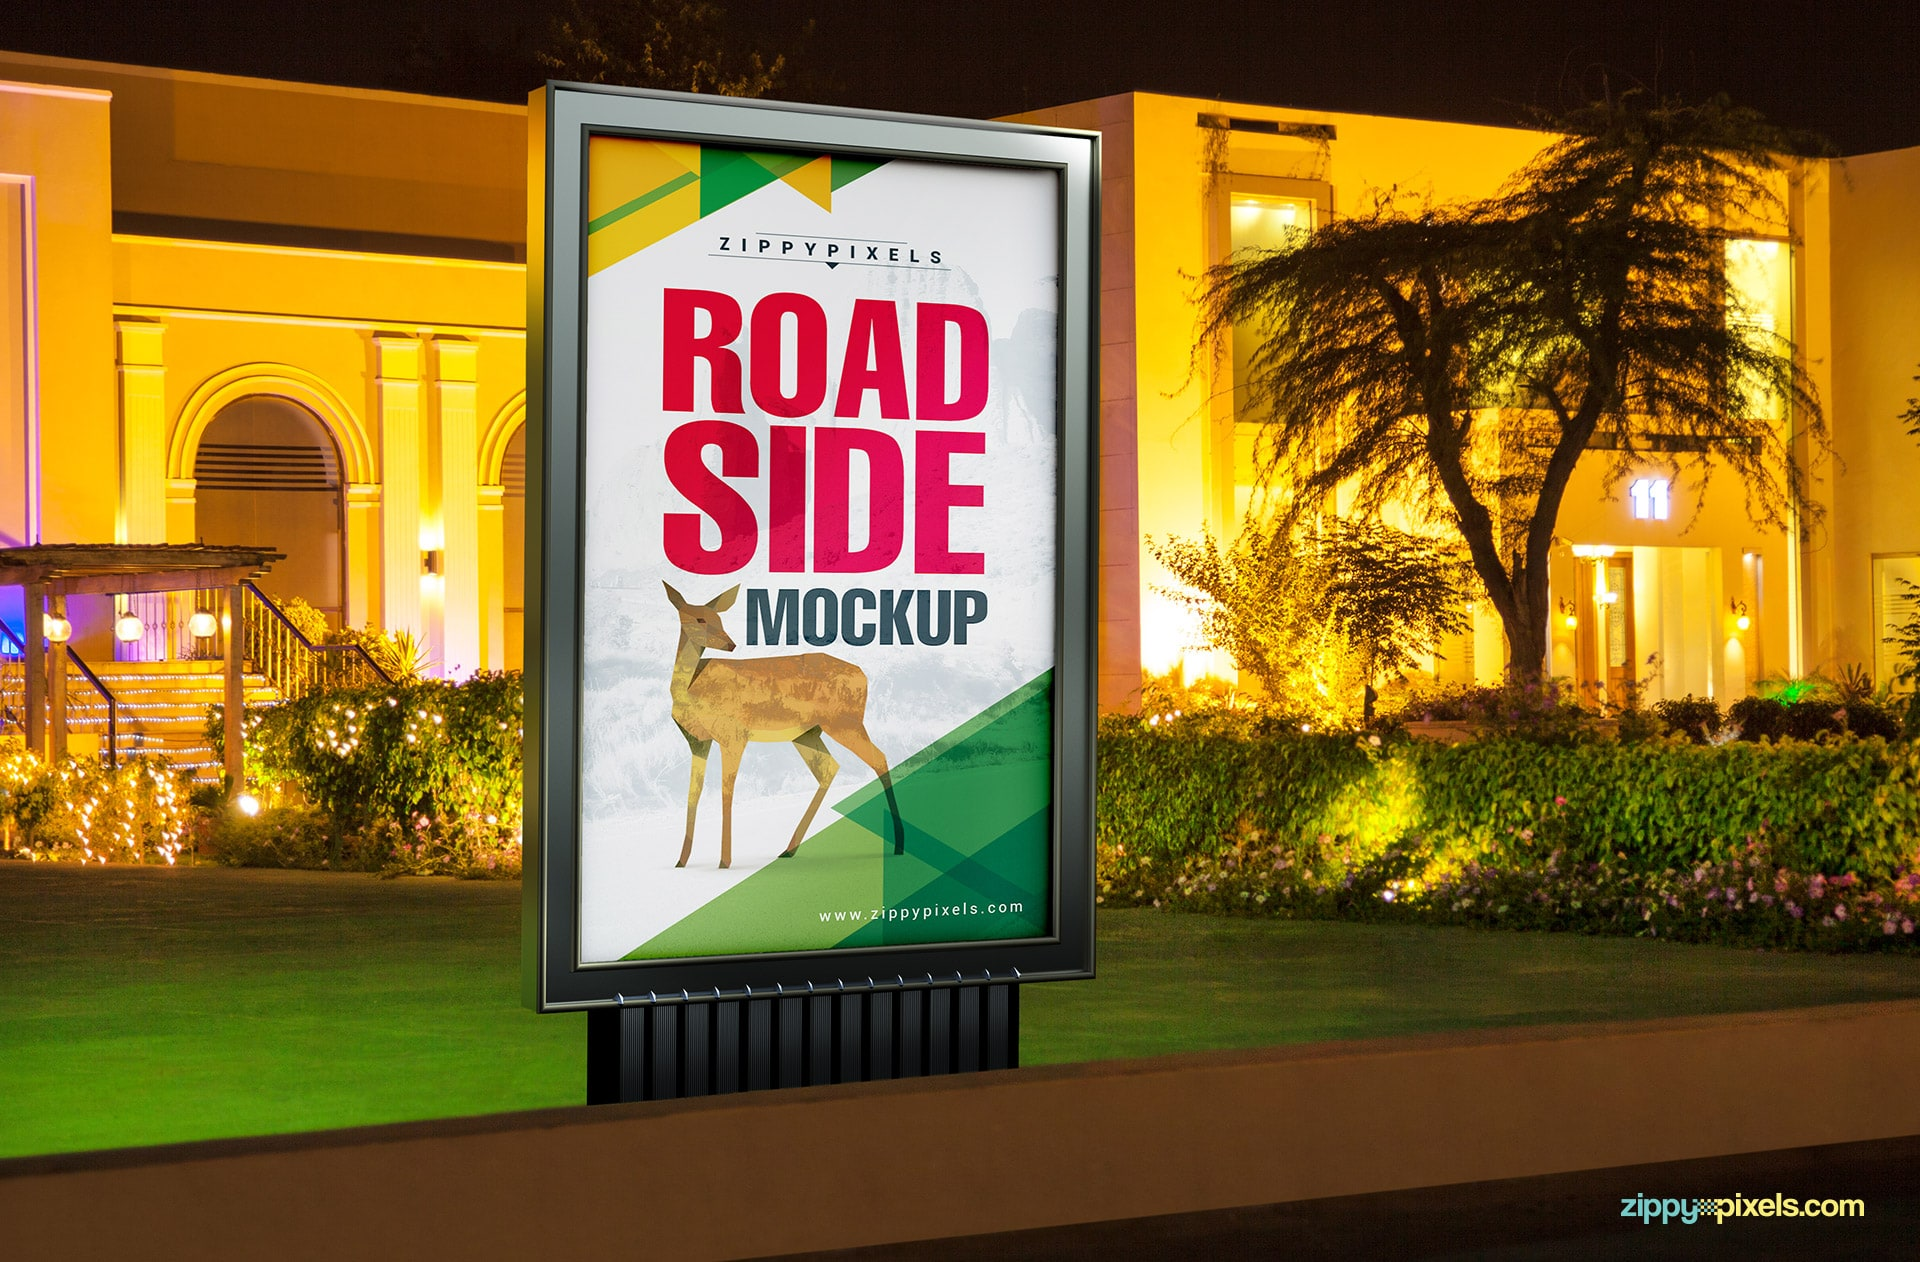 Awesome road side ad mockup to make your designs standout